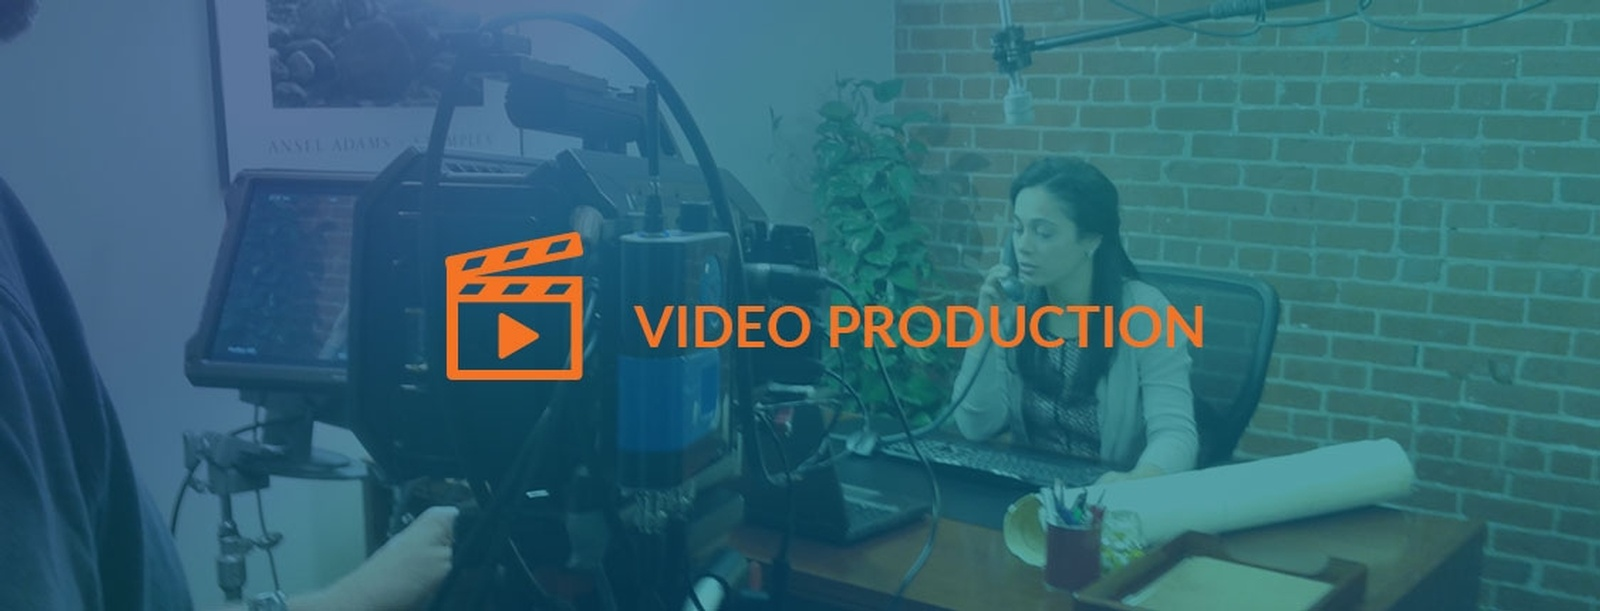 Video Production Danbury